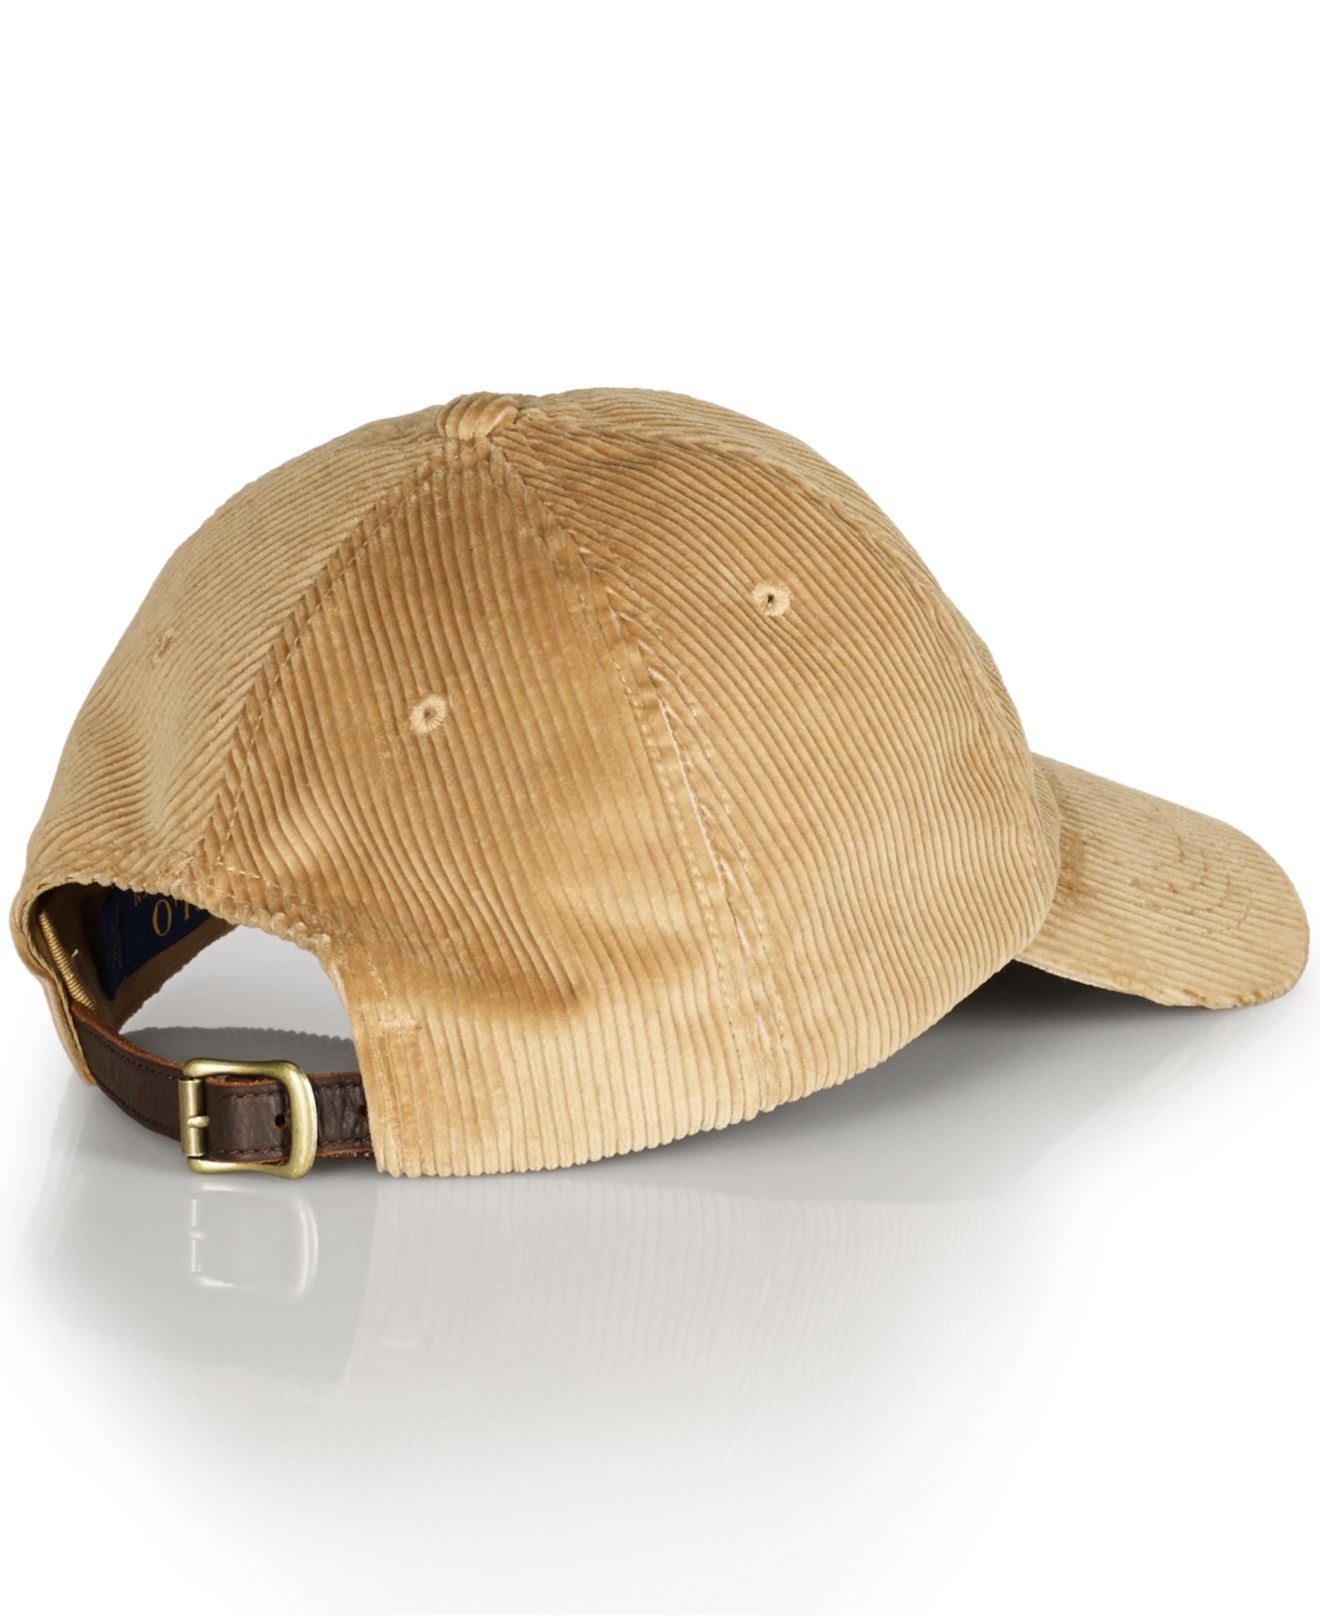 Lyst - Polo Ralph Lauren Corduroy Sports Cap in Natural for Men b323764bf63